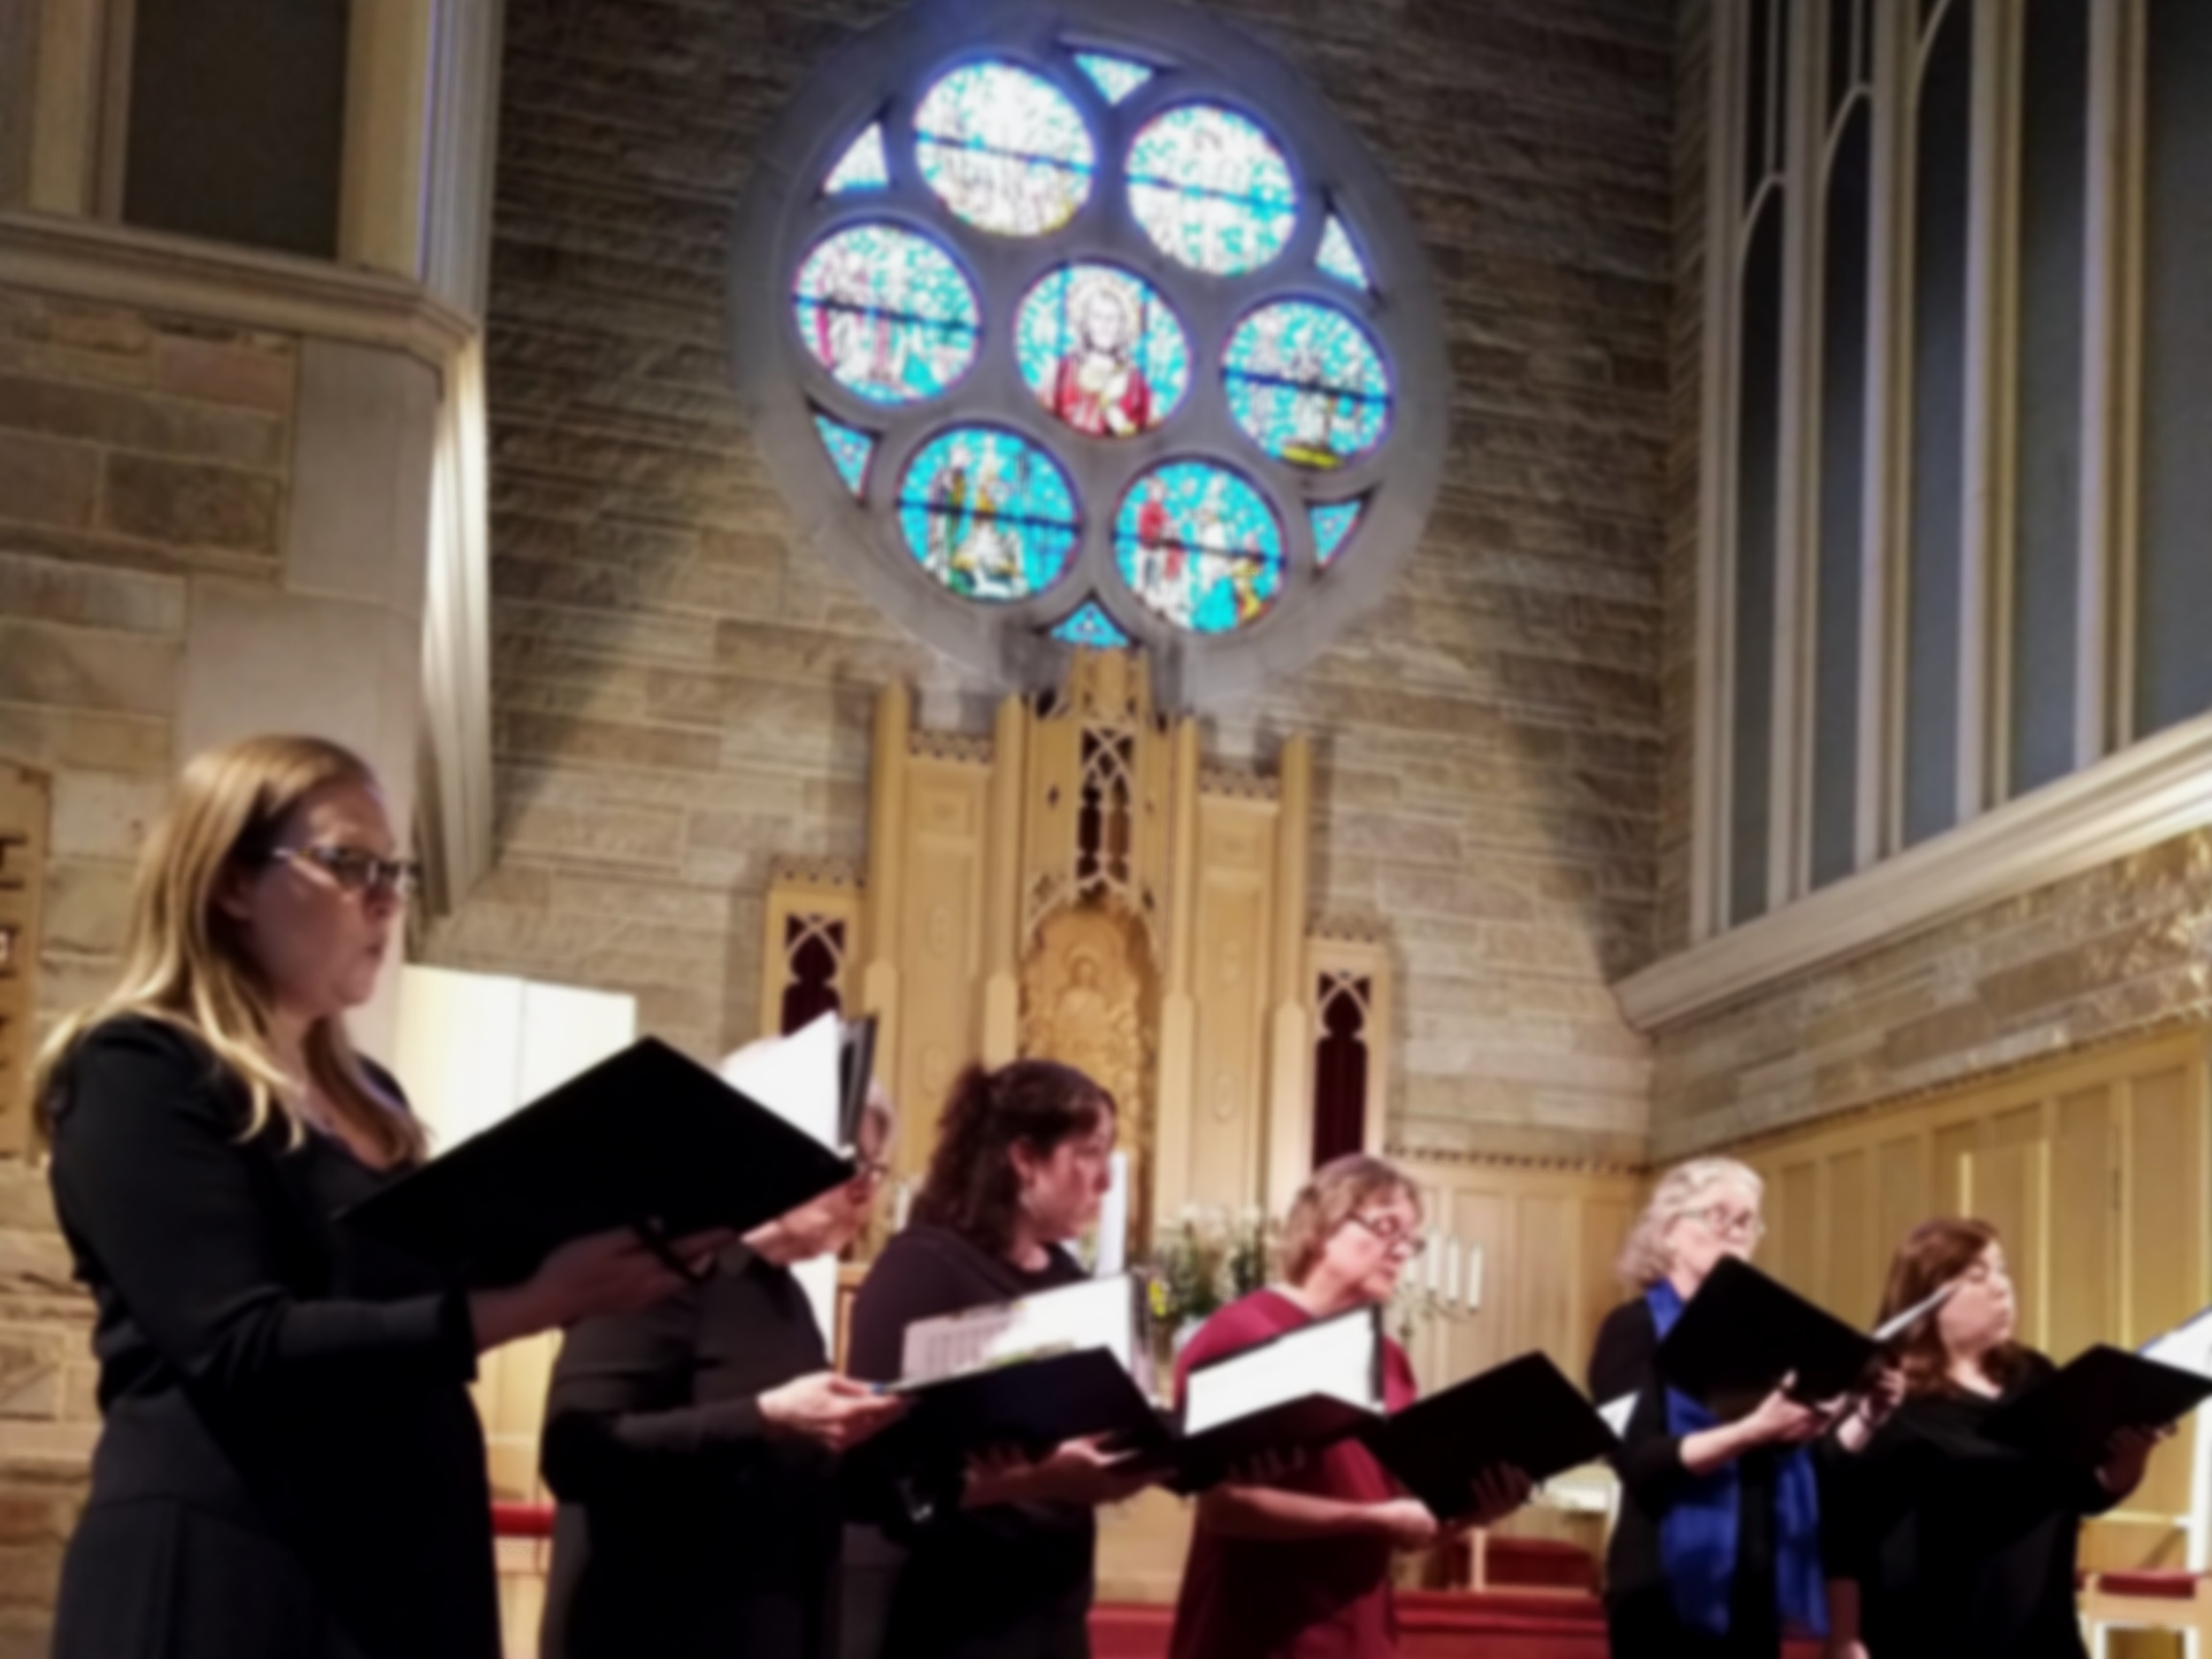 Rehearsals - Lux Cantorum Chicago rehearses Monday nights from 7:30pm-9:30pm in Portage Park. Our season typically runs from September to May with a concerts spanning two weekends in December and May.